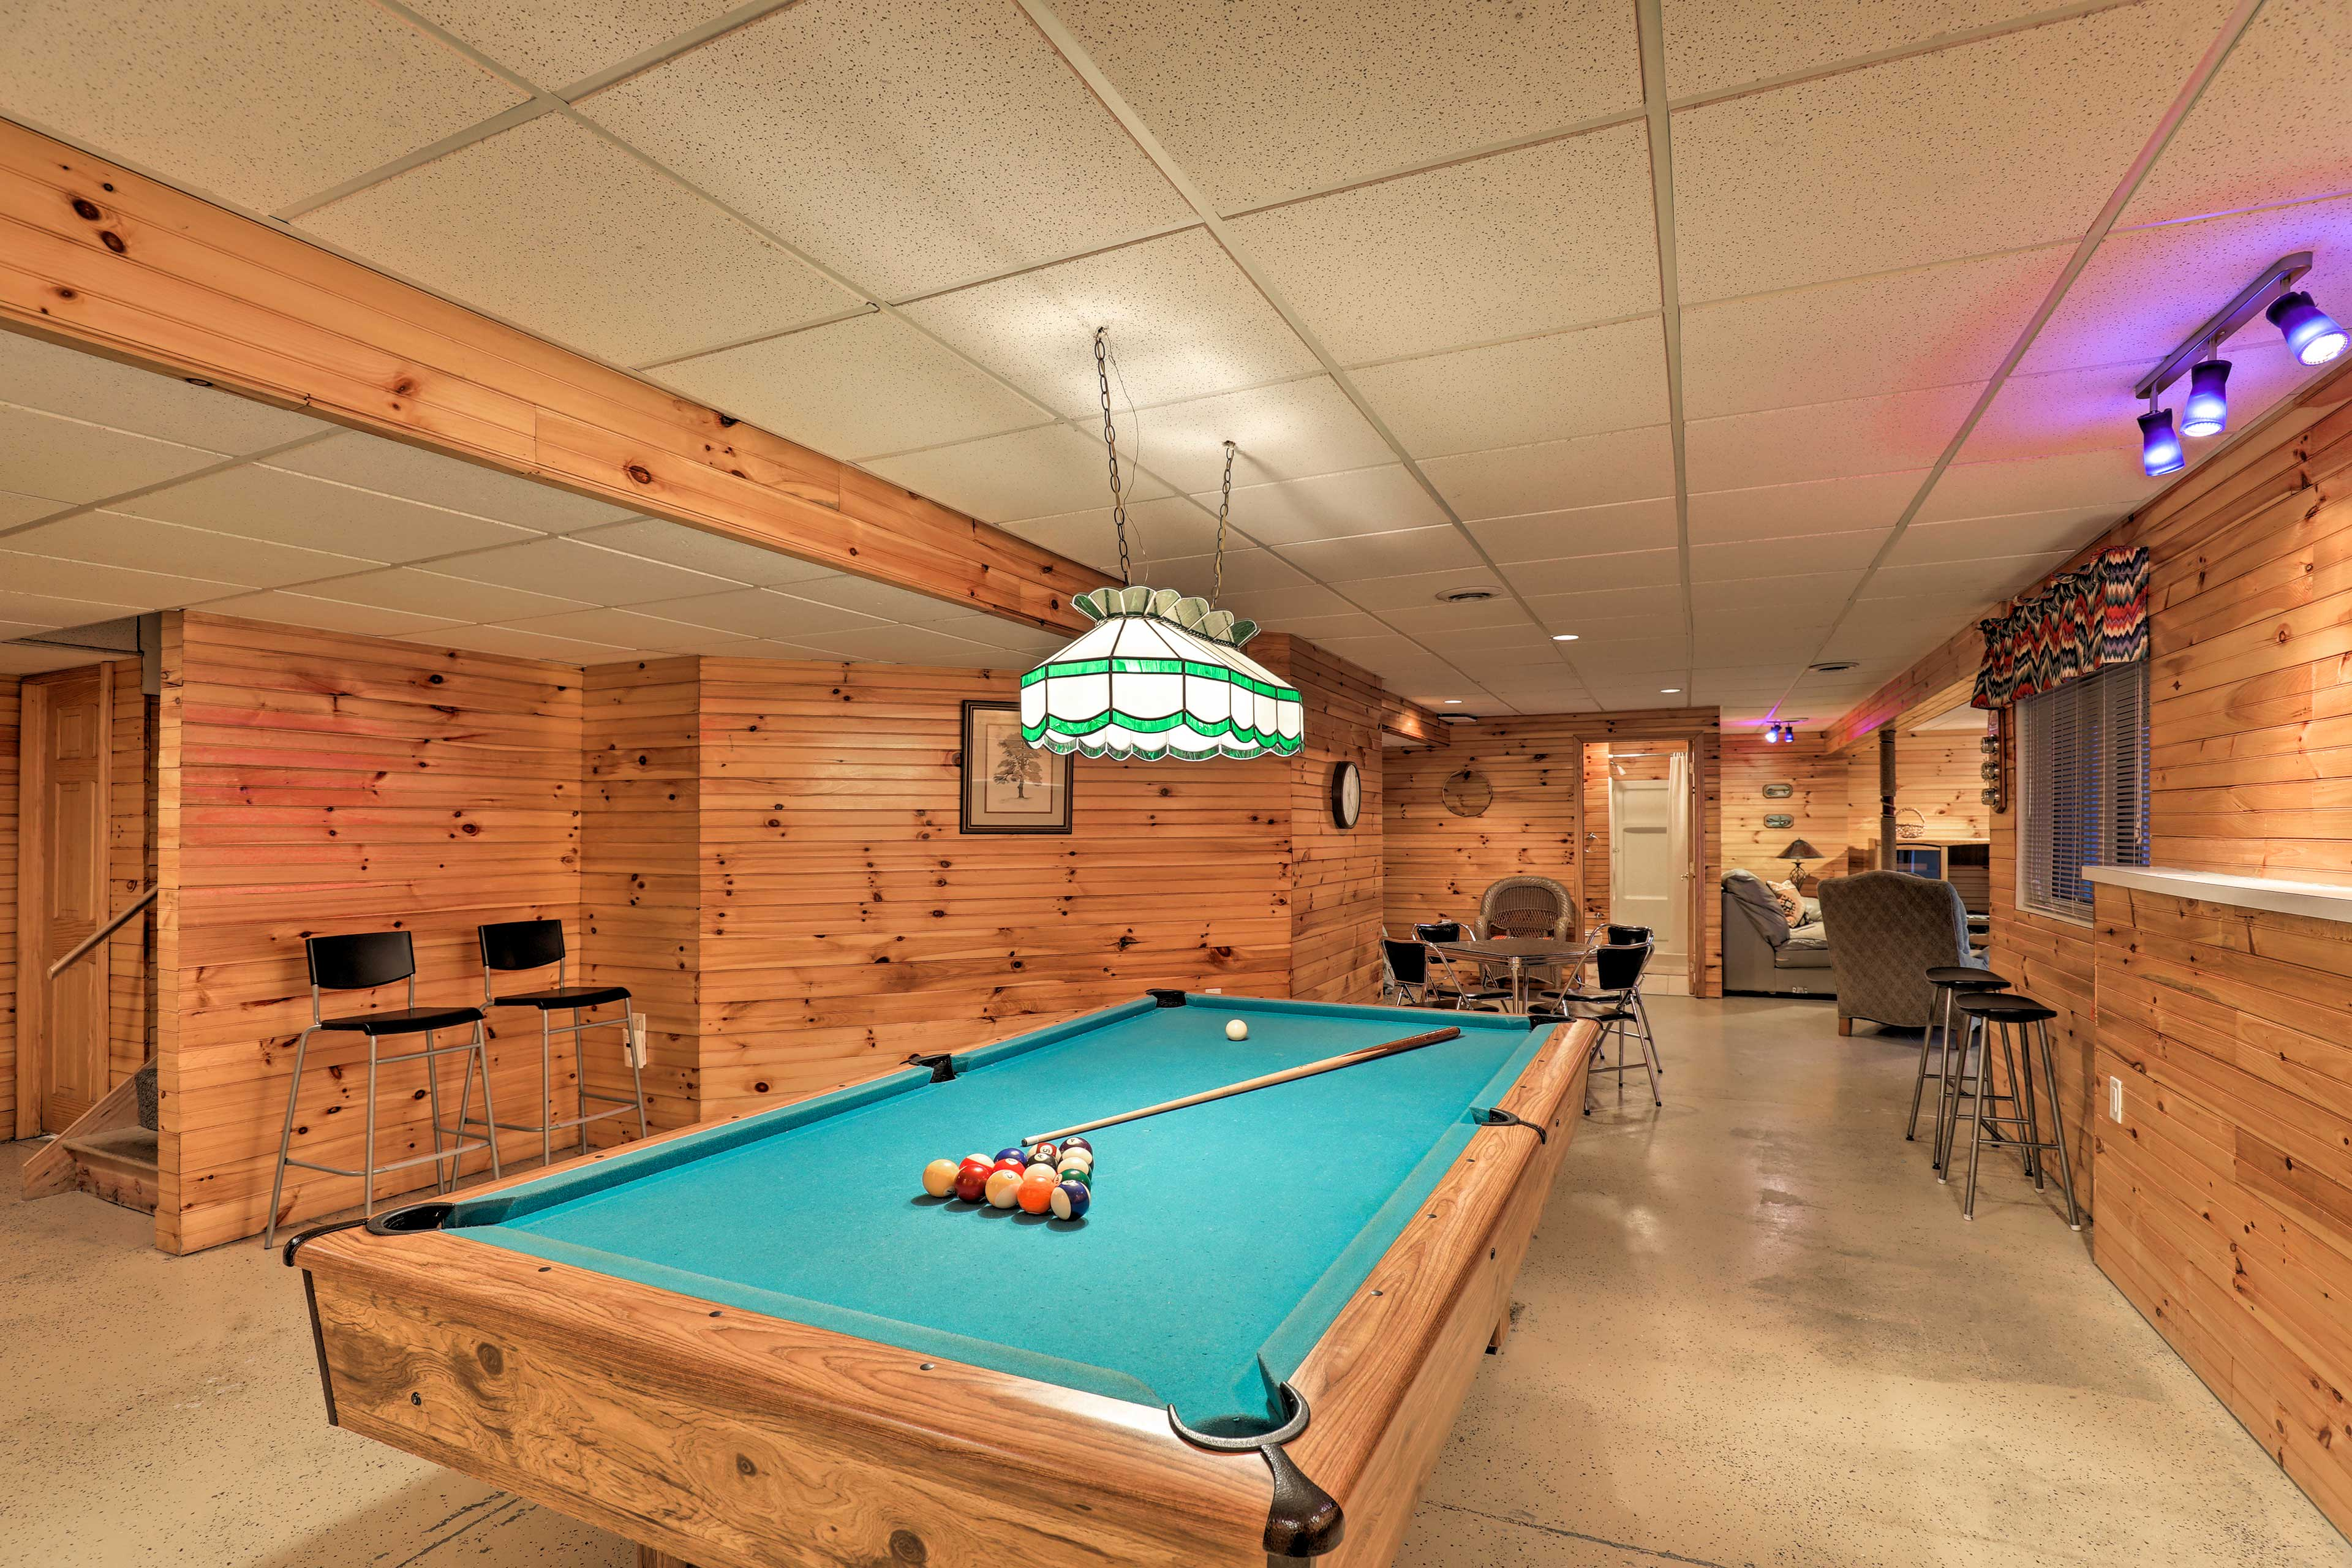 Let your competitive spirit shine with a game of pool in the game room!